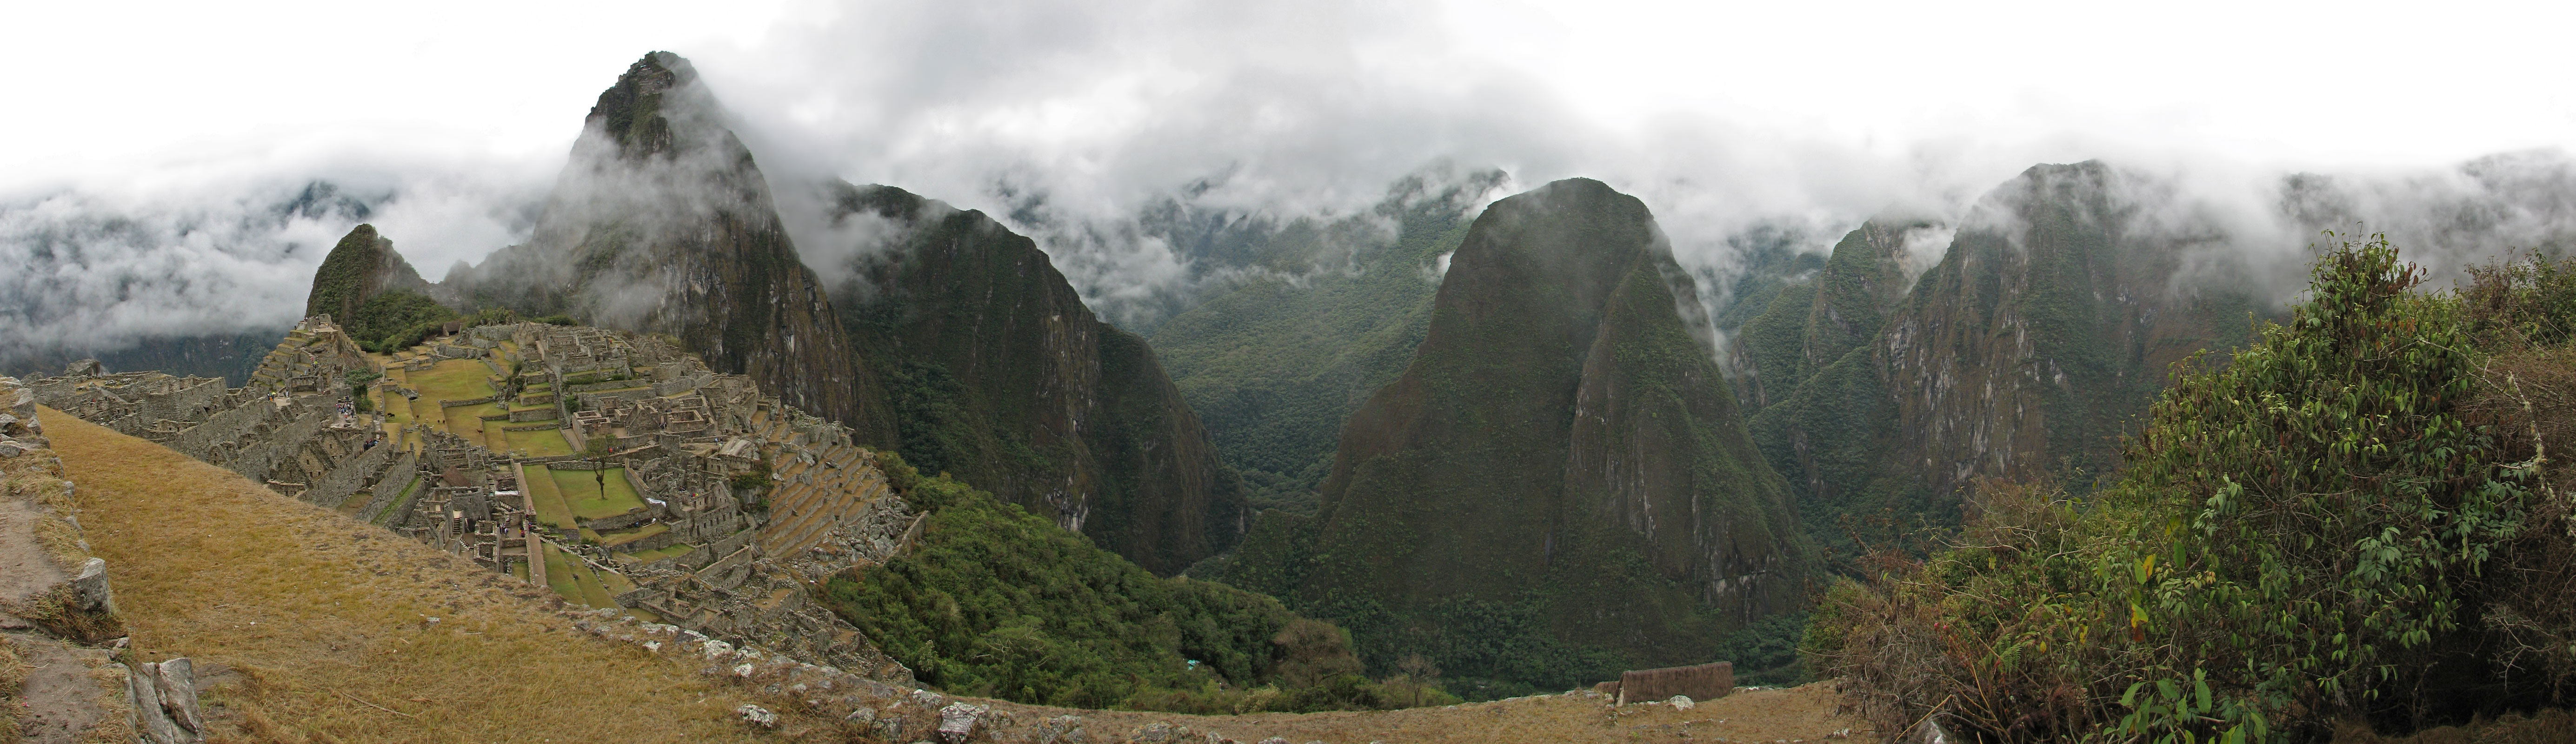 Panoramic Image of Machu Picchu and the Sacred Valley, Photographer: Rubyk